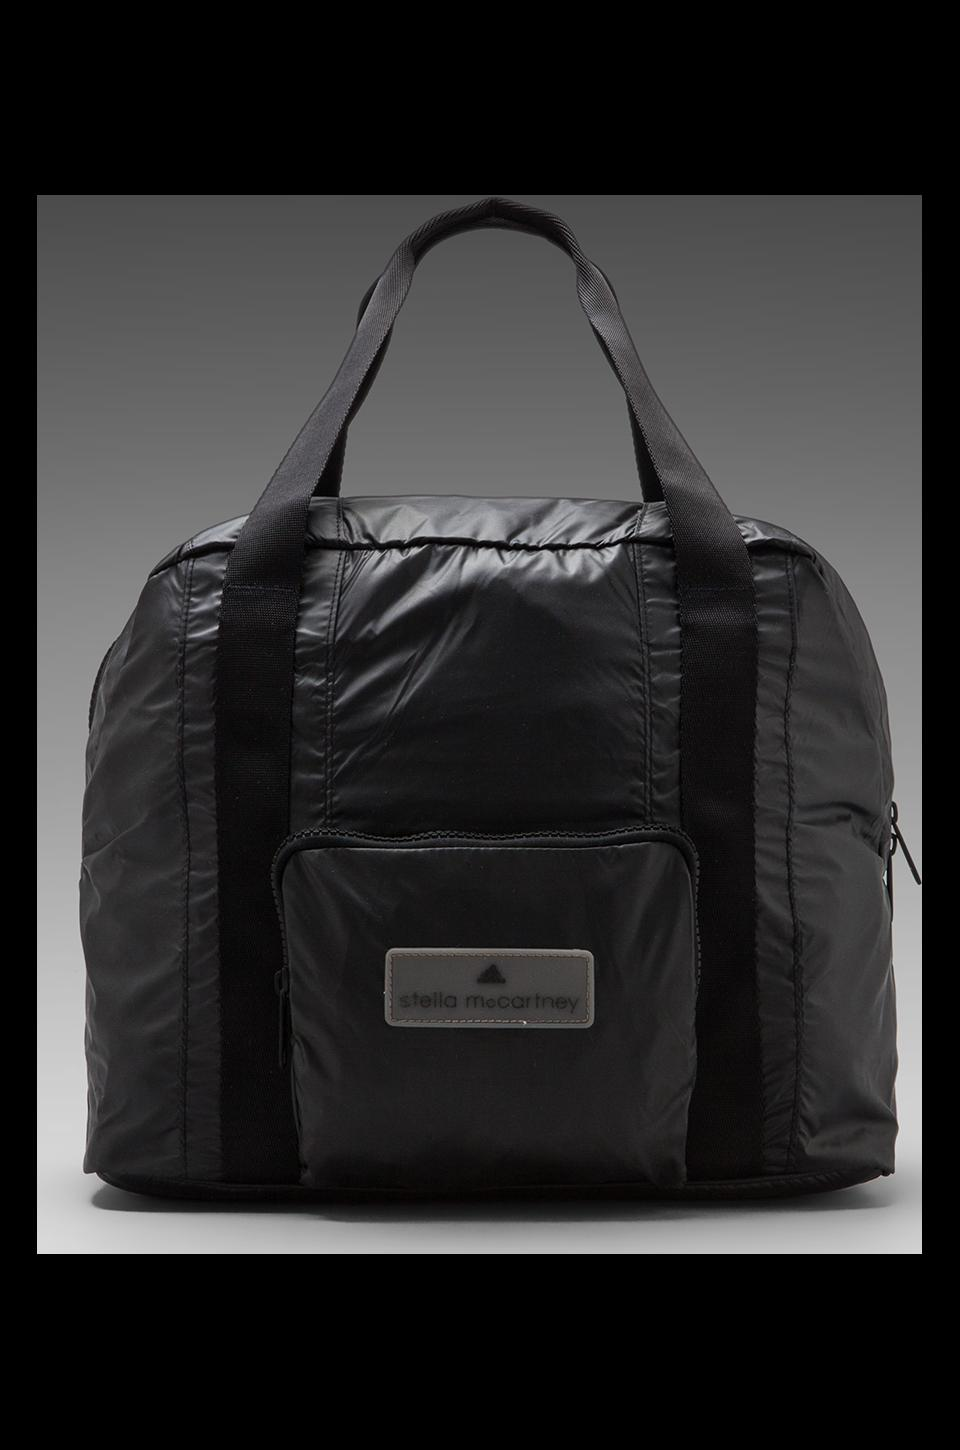 adidas by Stella McCartney Carry-On Bag in Black